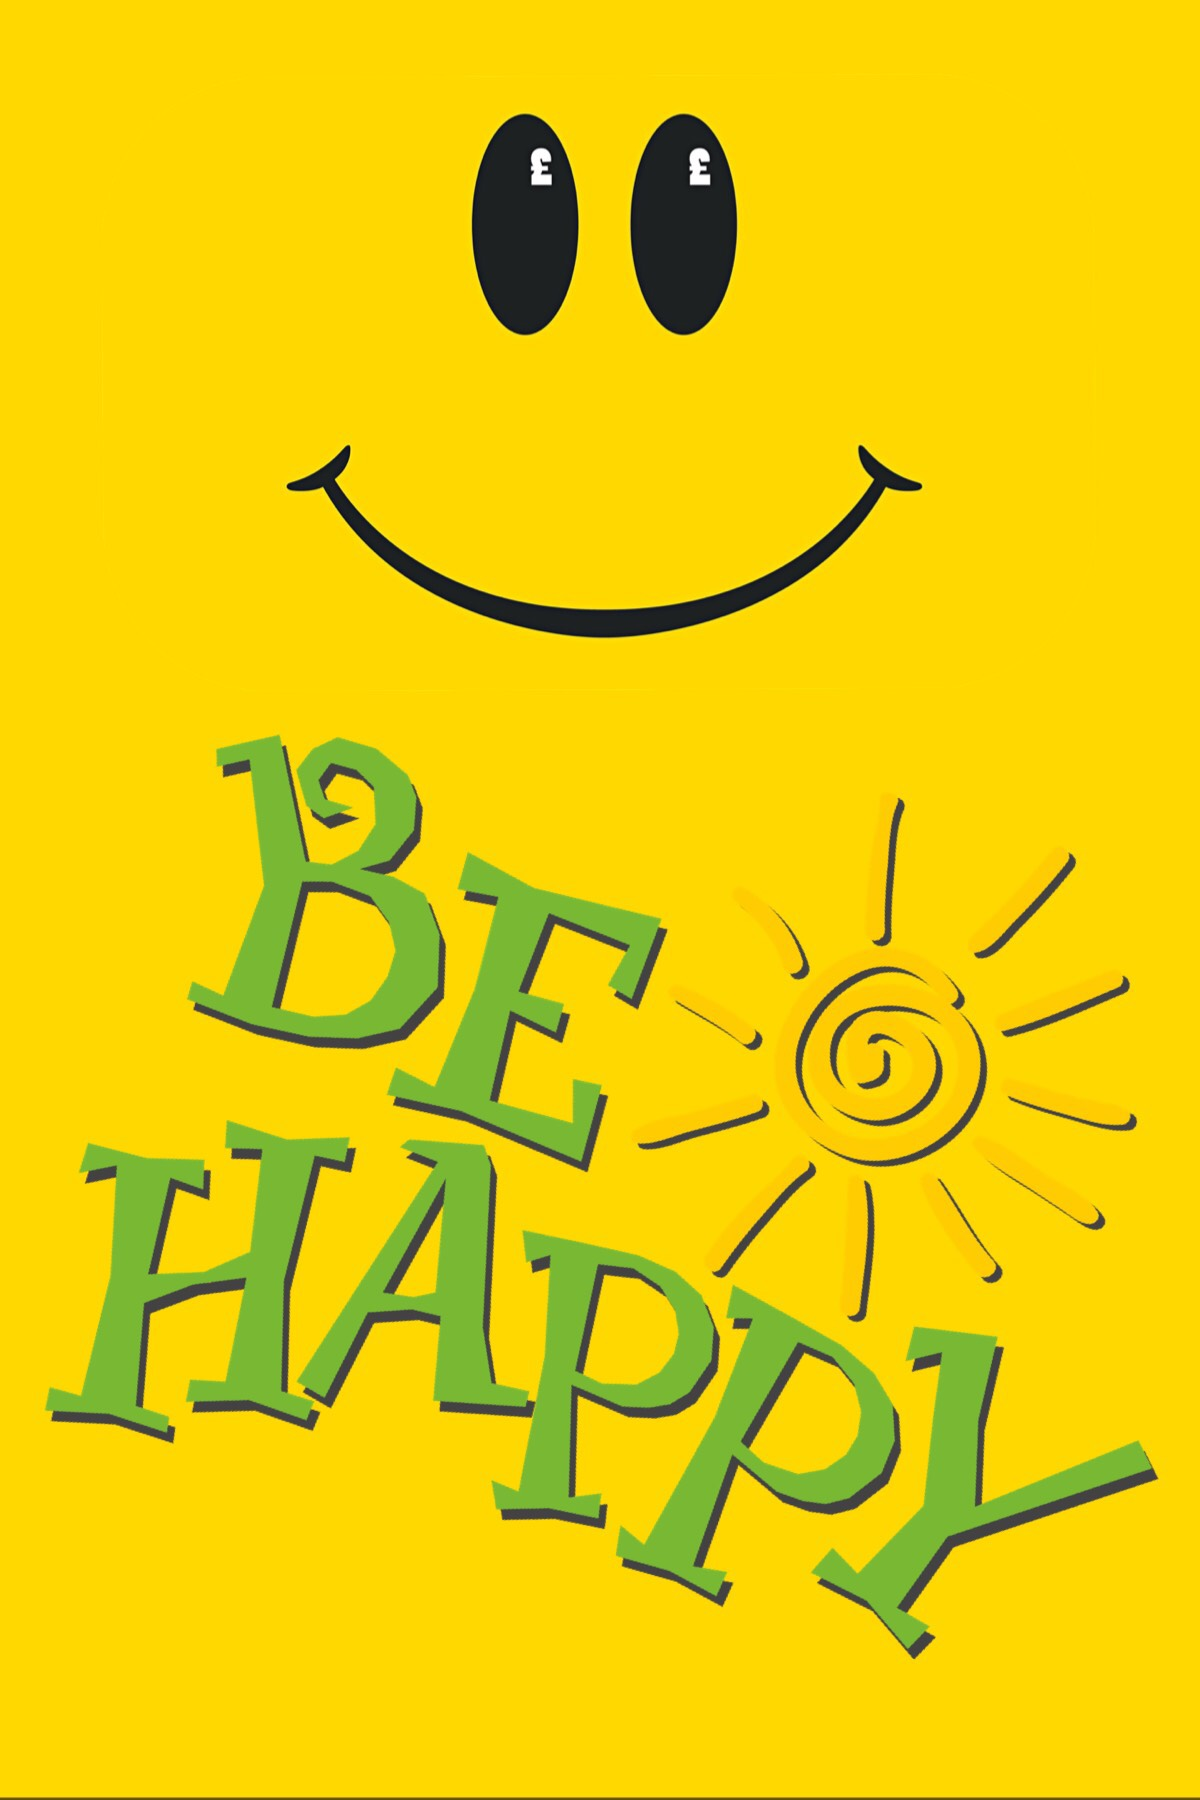 Just be happy!😁